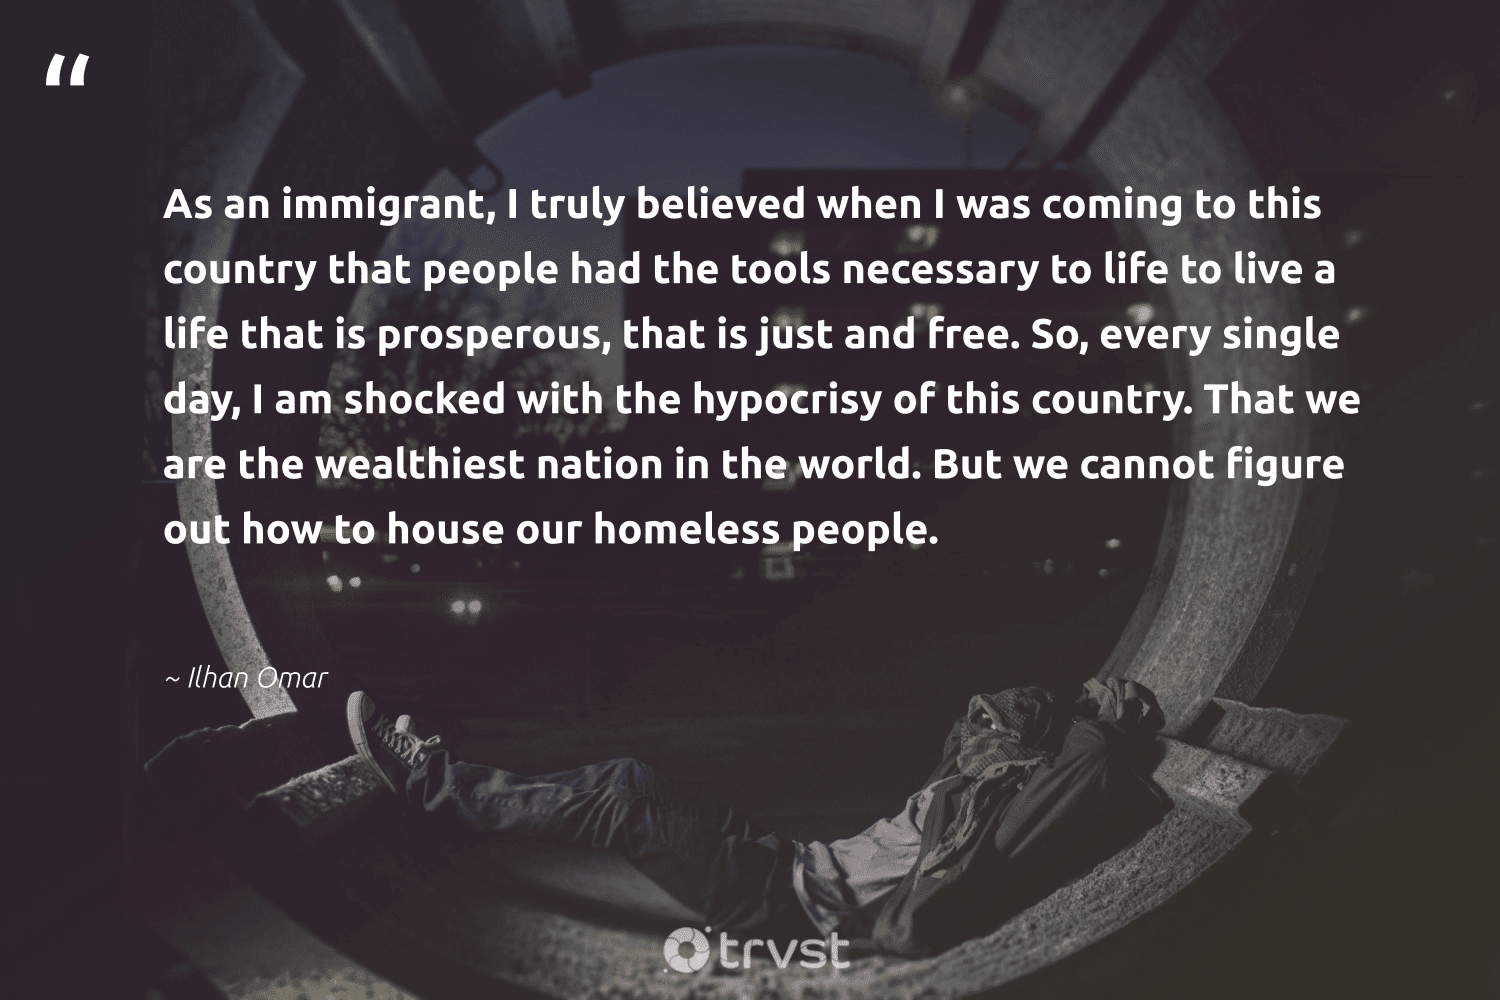 """""""As an immigrant, I truly believed when I was coming to this country that people had the tools necessary to life to live a life that is prosperous, that is just and free. So, every single day, I am shocked with the hypocrisy of this country. That we are the wealthiest nation in the world. But we cannot figure out how to house our homeless people.""""  - Ilhan Omar #trvst #quotes #homelessness #homeless #equalopportunity #sustainablefutures #thinkgreen #makeadifference #inclusion #gogreen #equalrights #weareallone"""